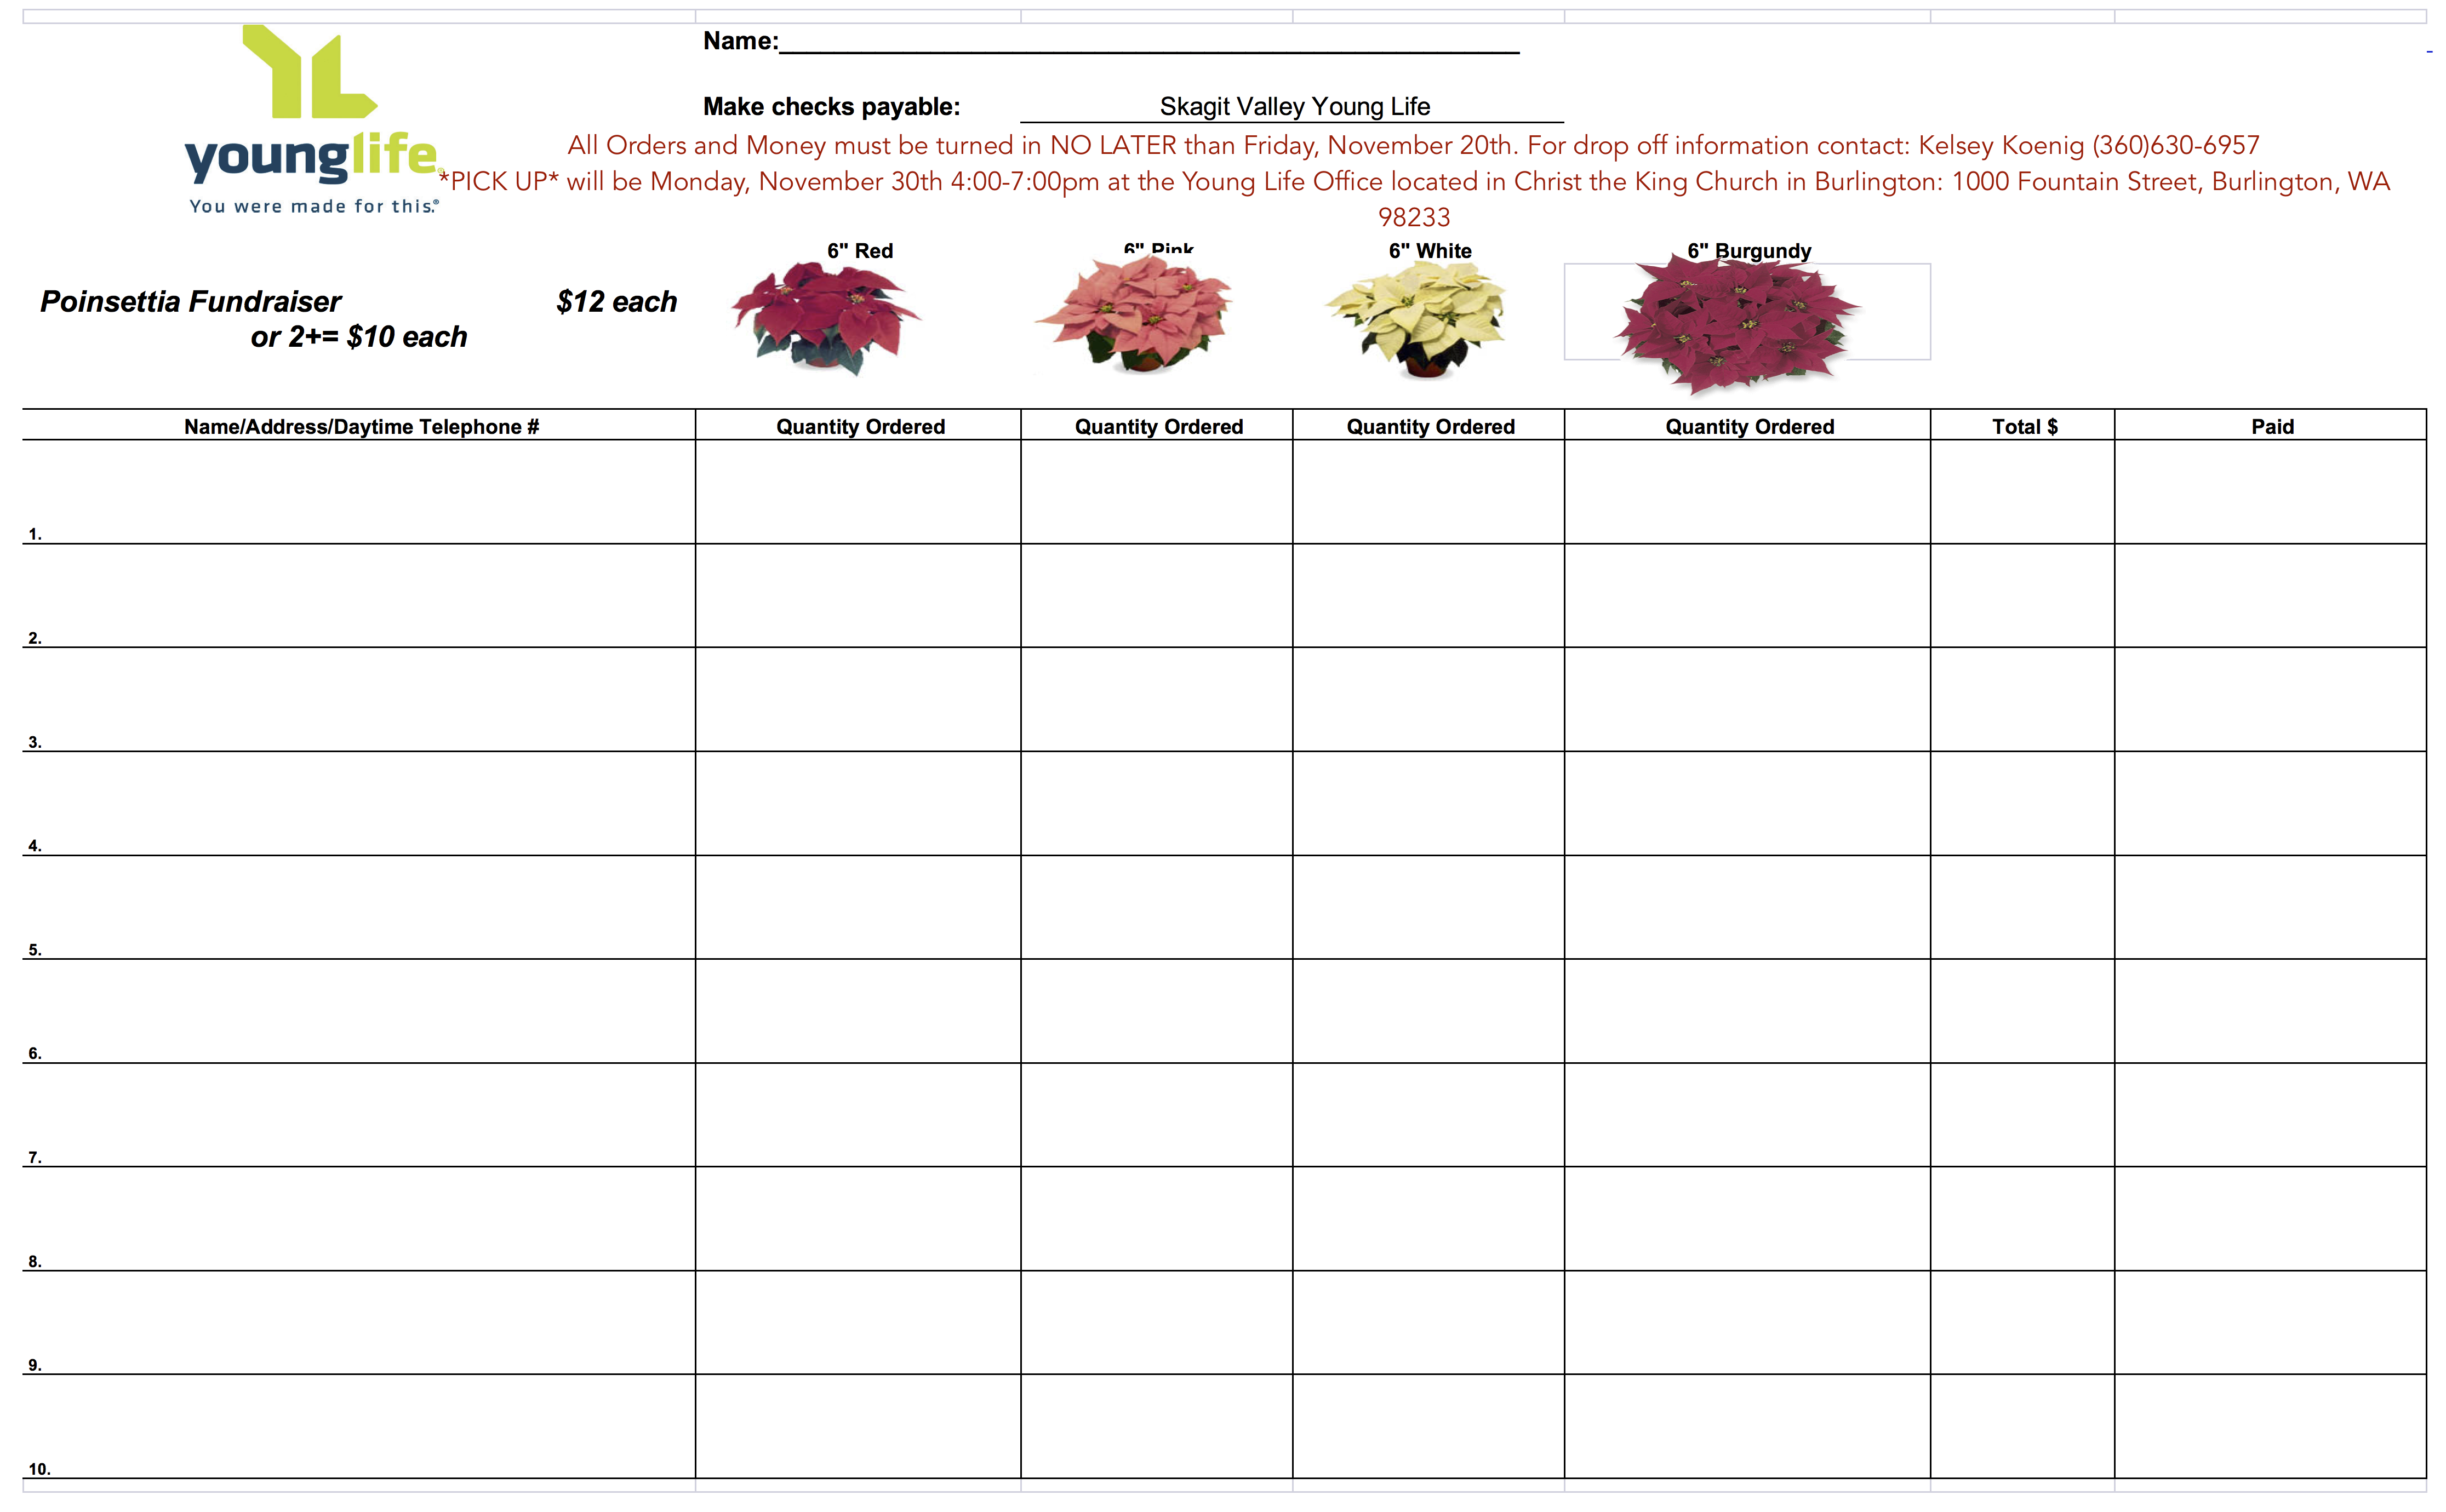 Poinsettia Fundraiser Order Form   Camp Payment Page  Pto